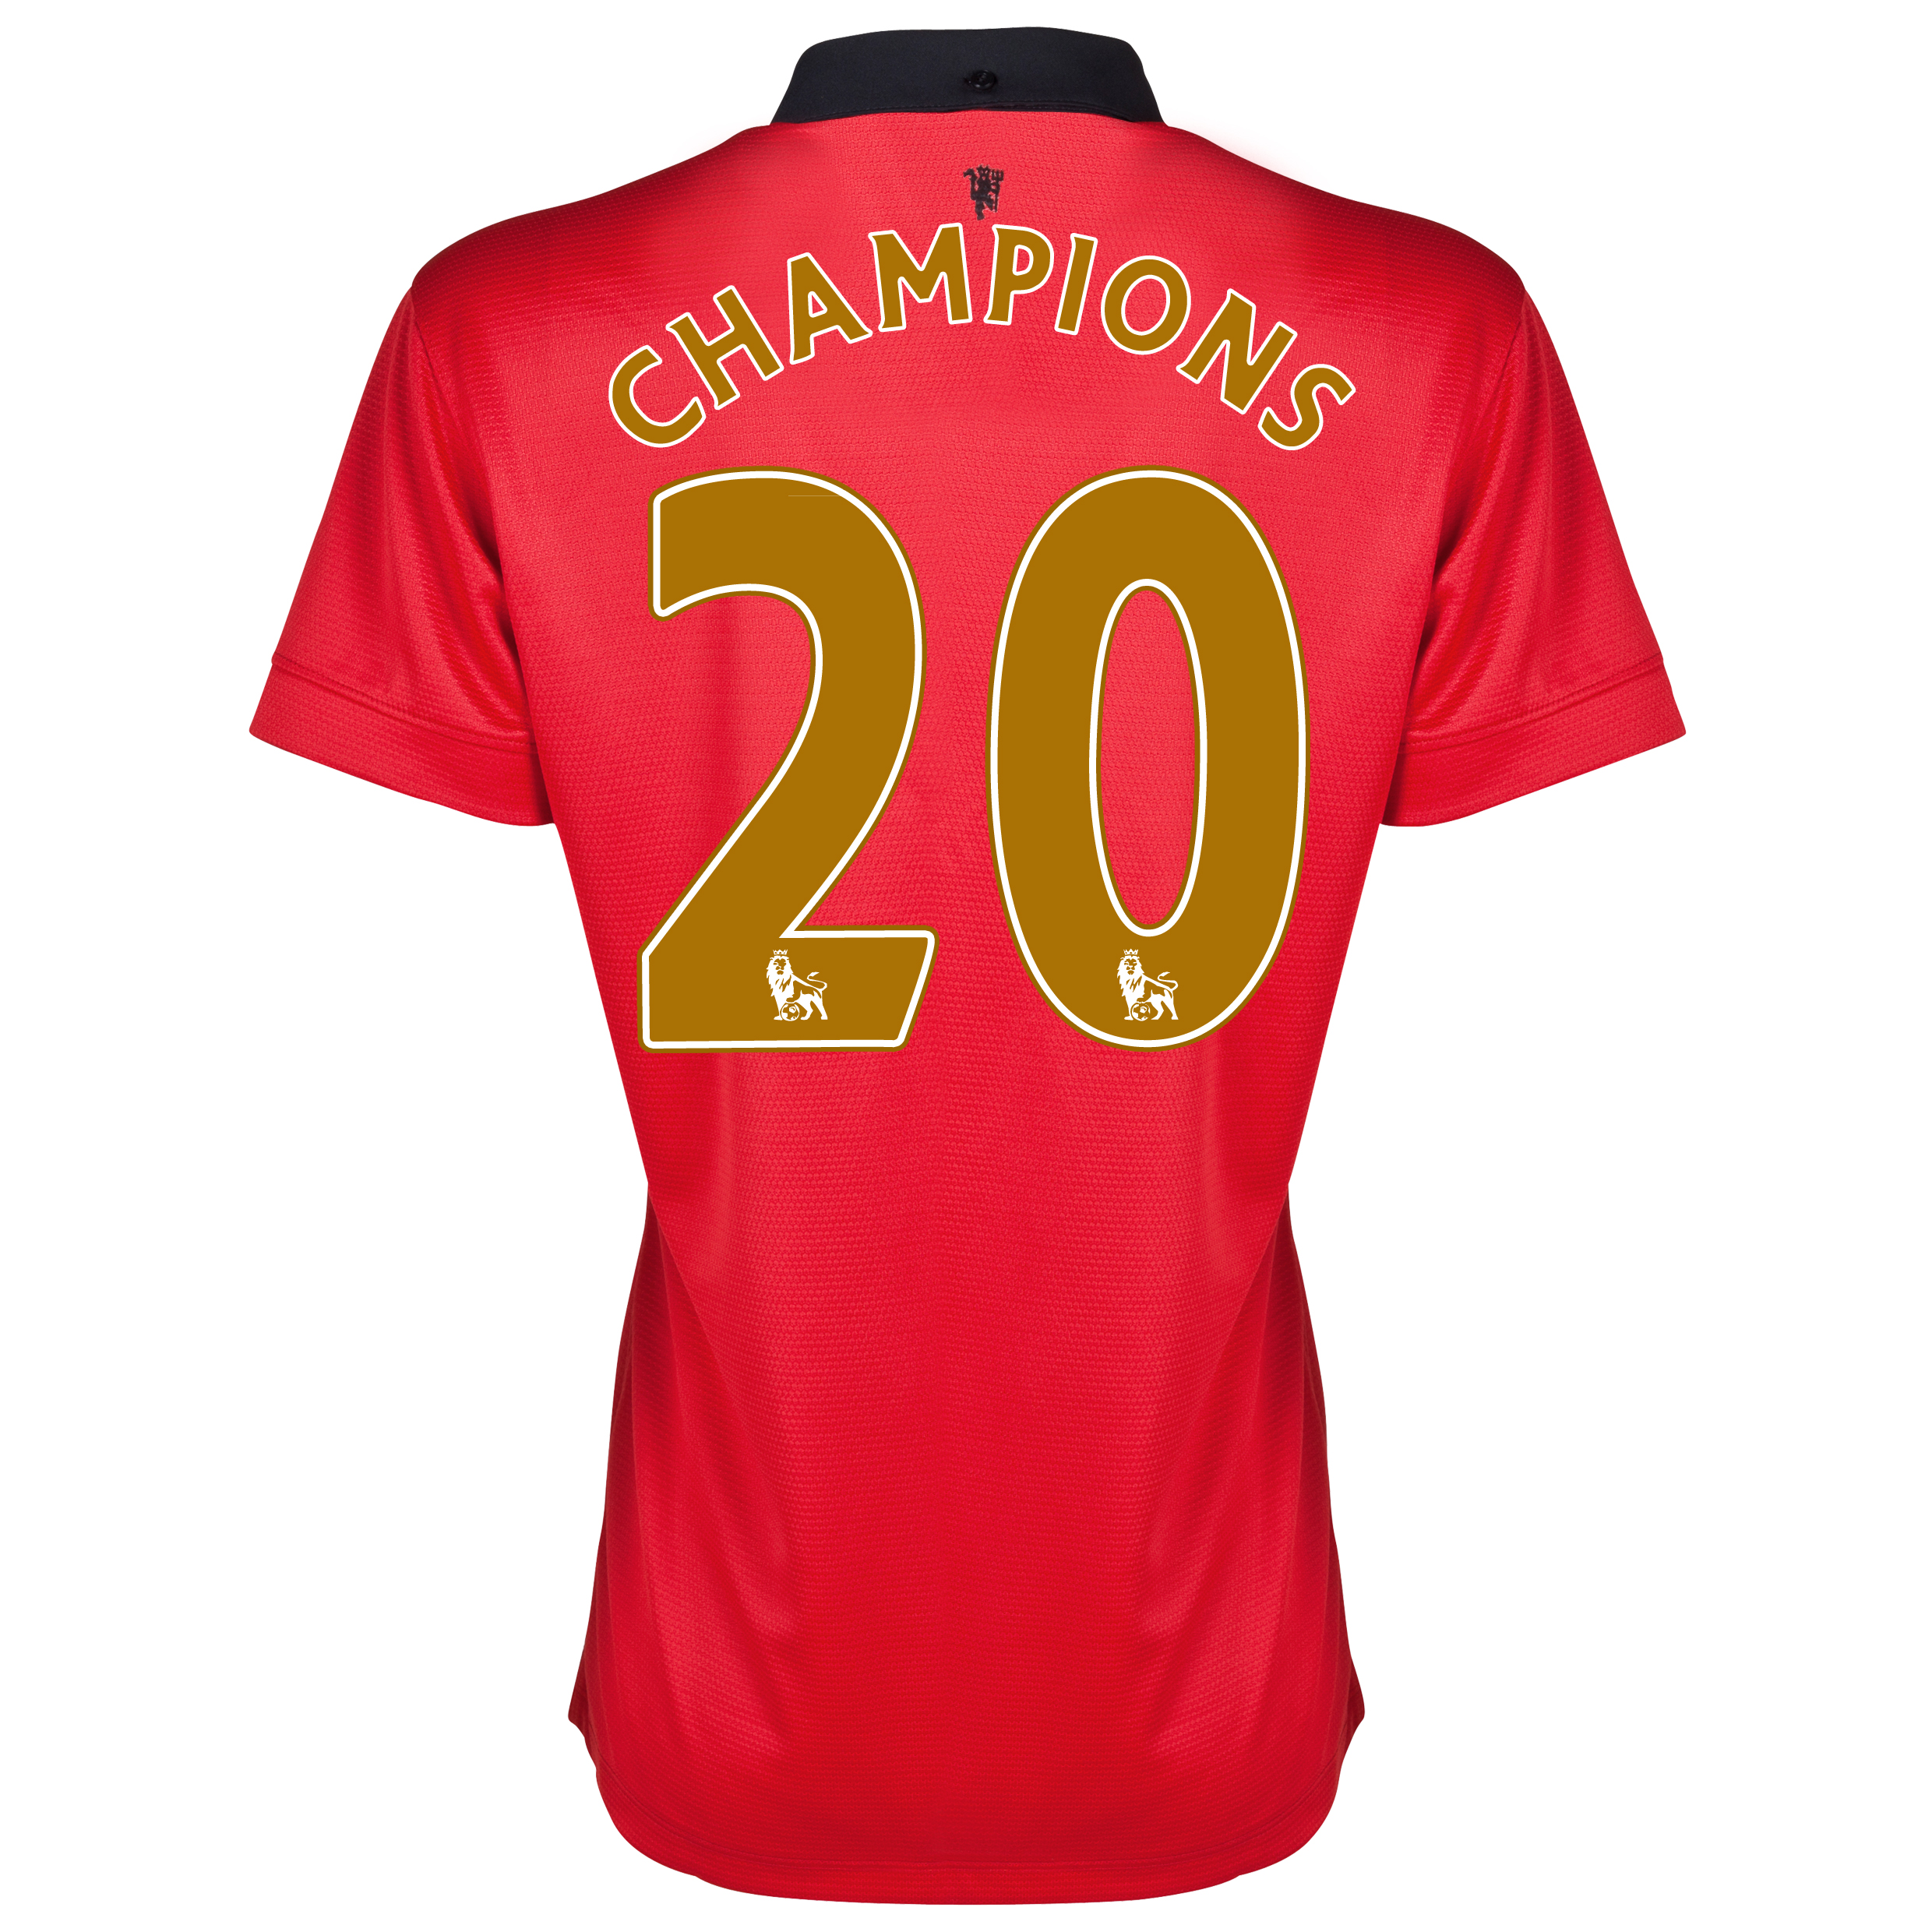 Manchester United Home Shirt 2013/14 - Womens with Champions 20 printing